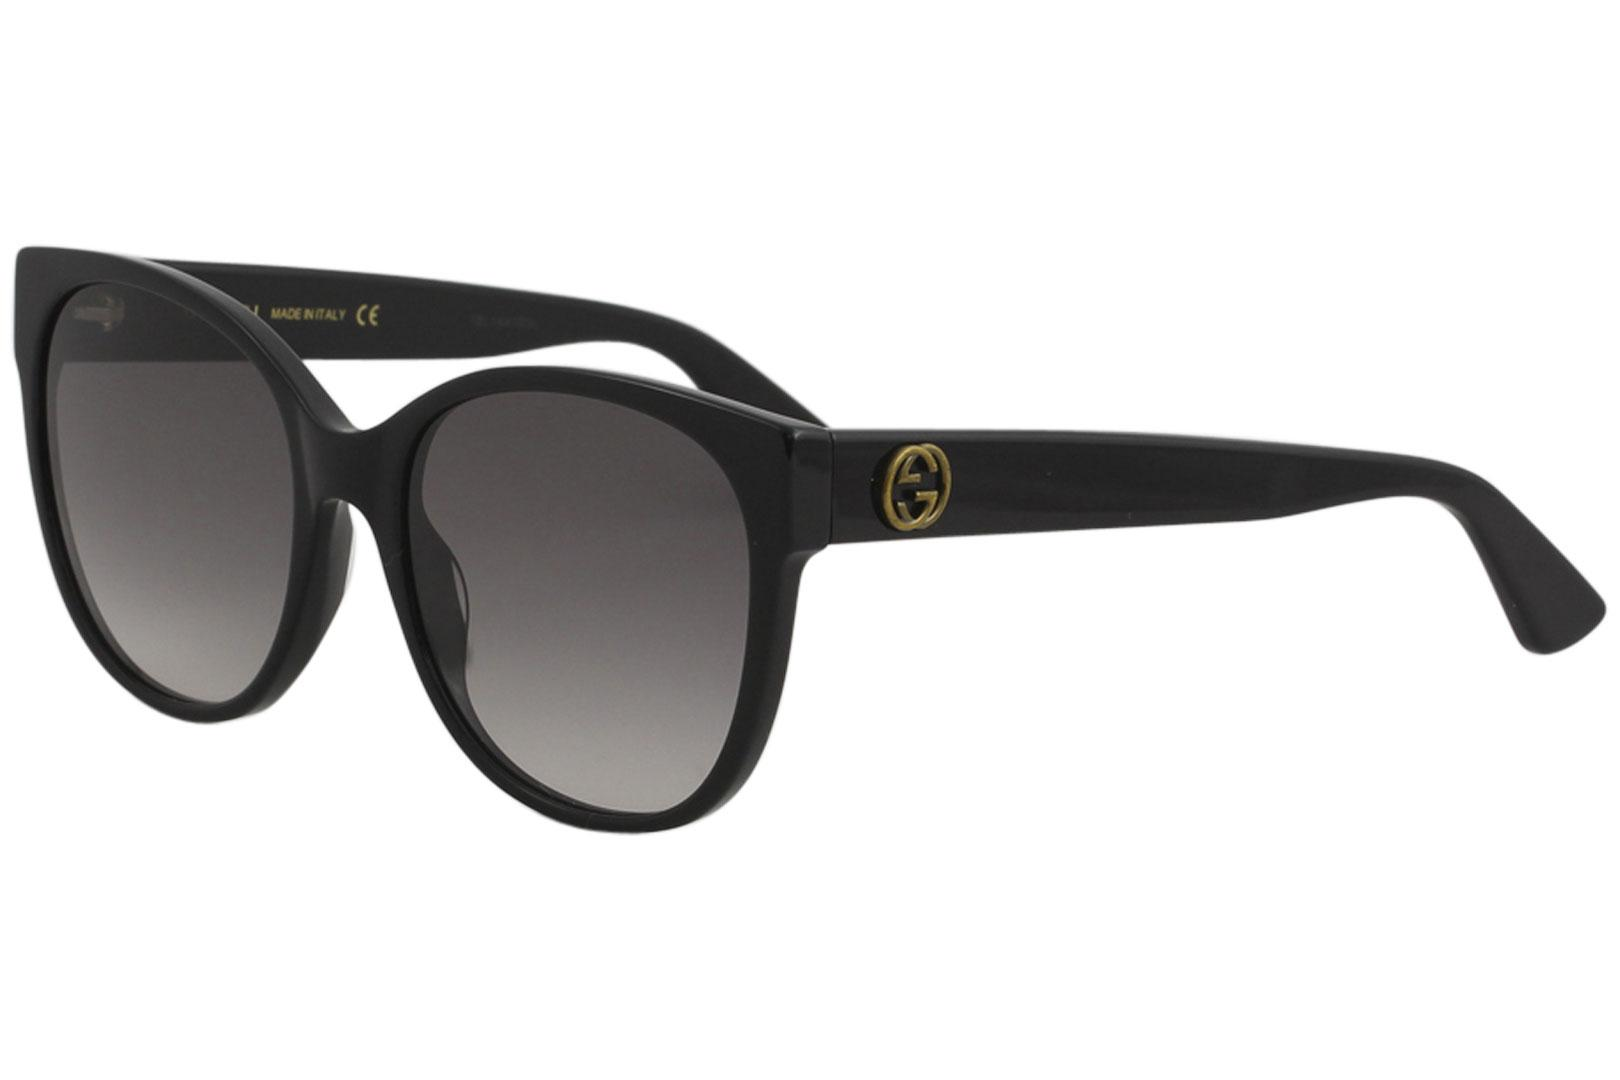 dbea5e6c59 Gucci Women s Sensual Romantic GG0097S GG 0097 S Fashion Cat Eye Sunglasses  by Gucci. Hover to zoom